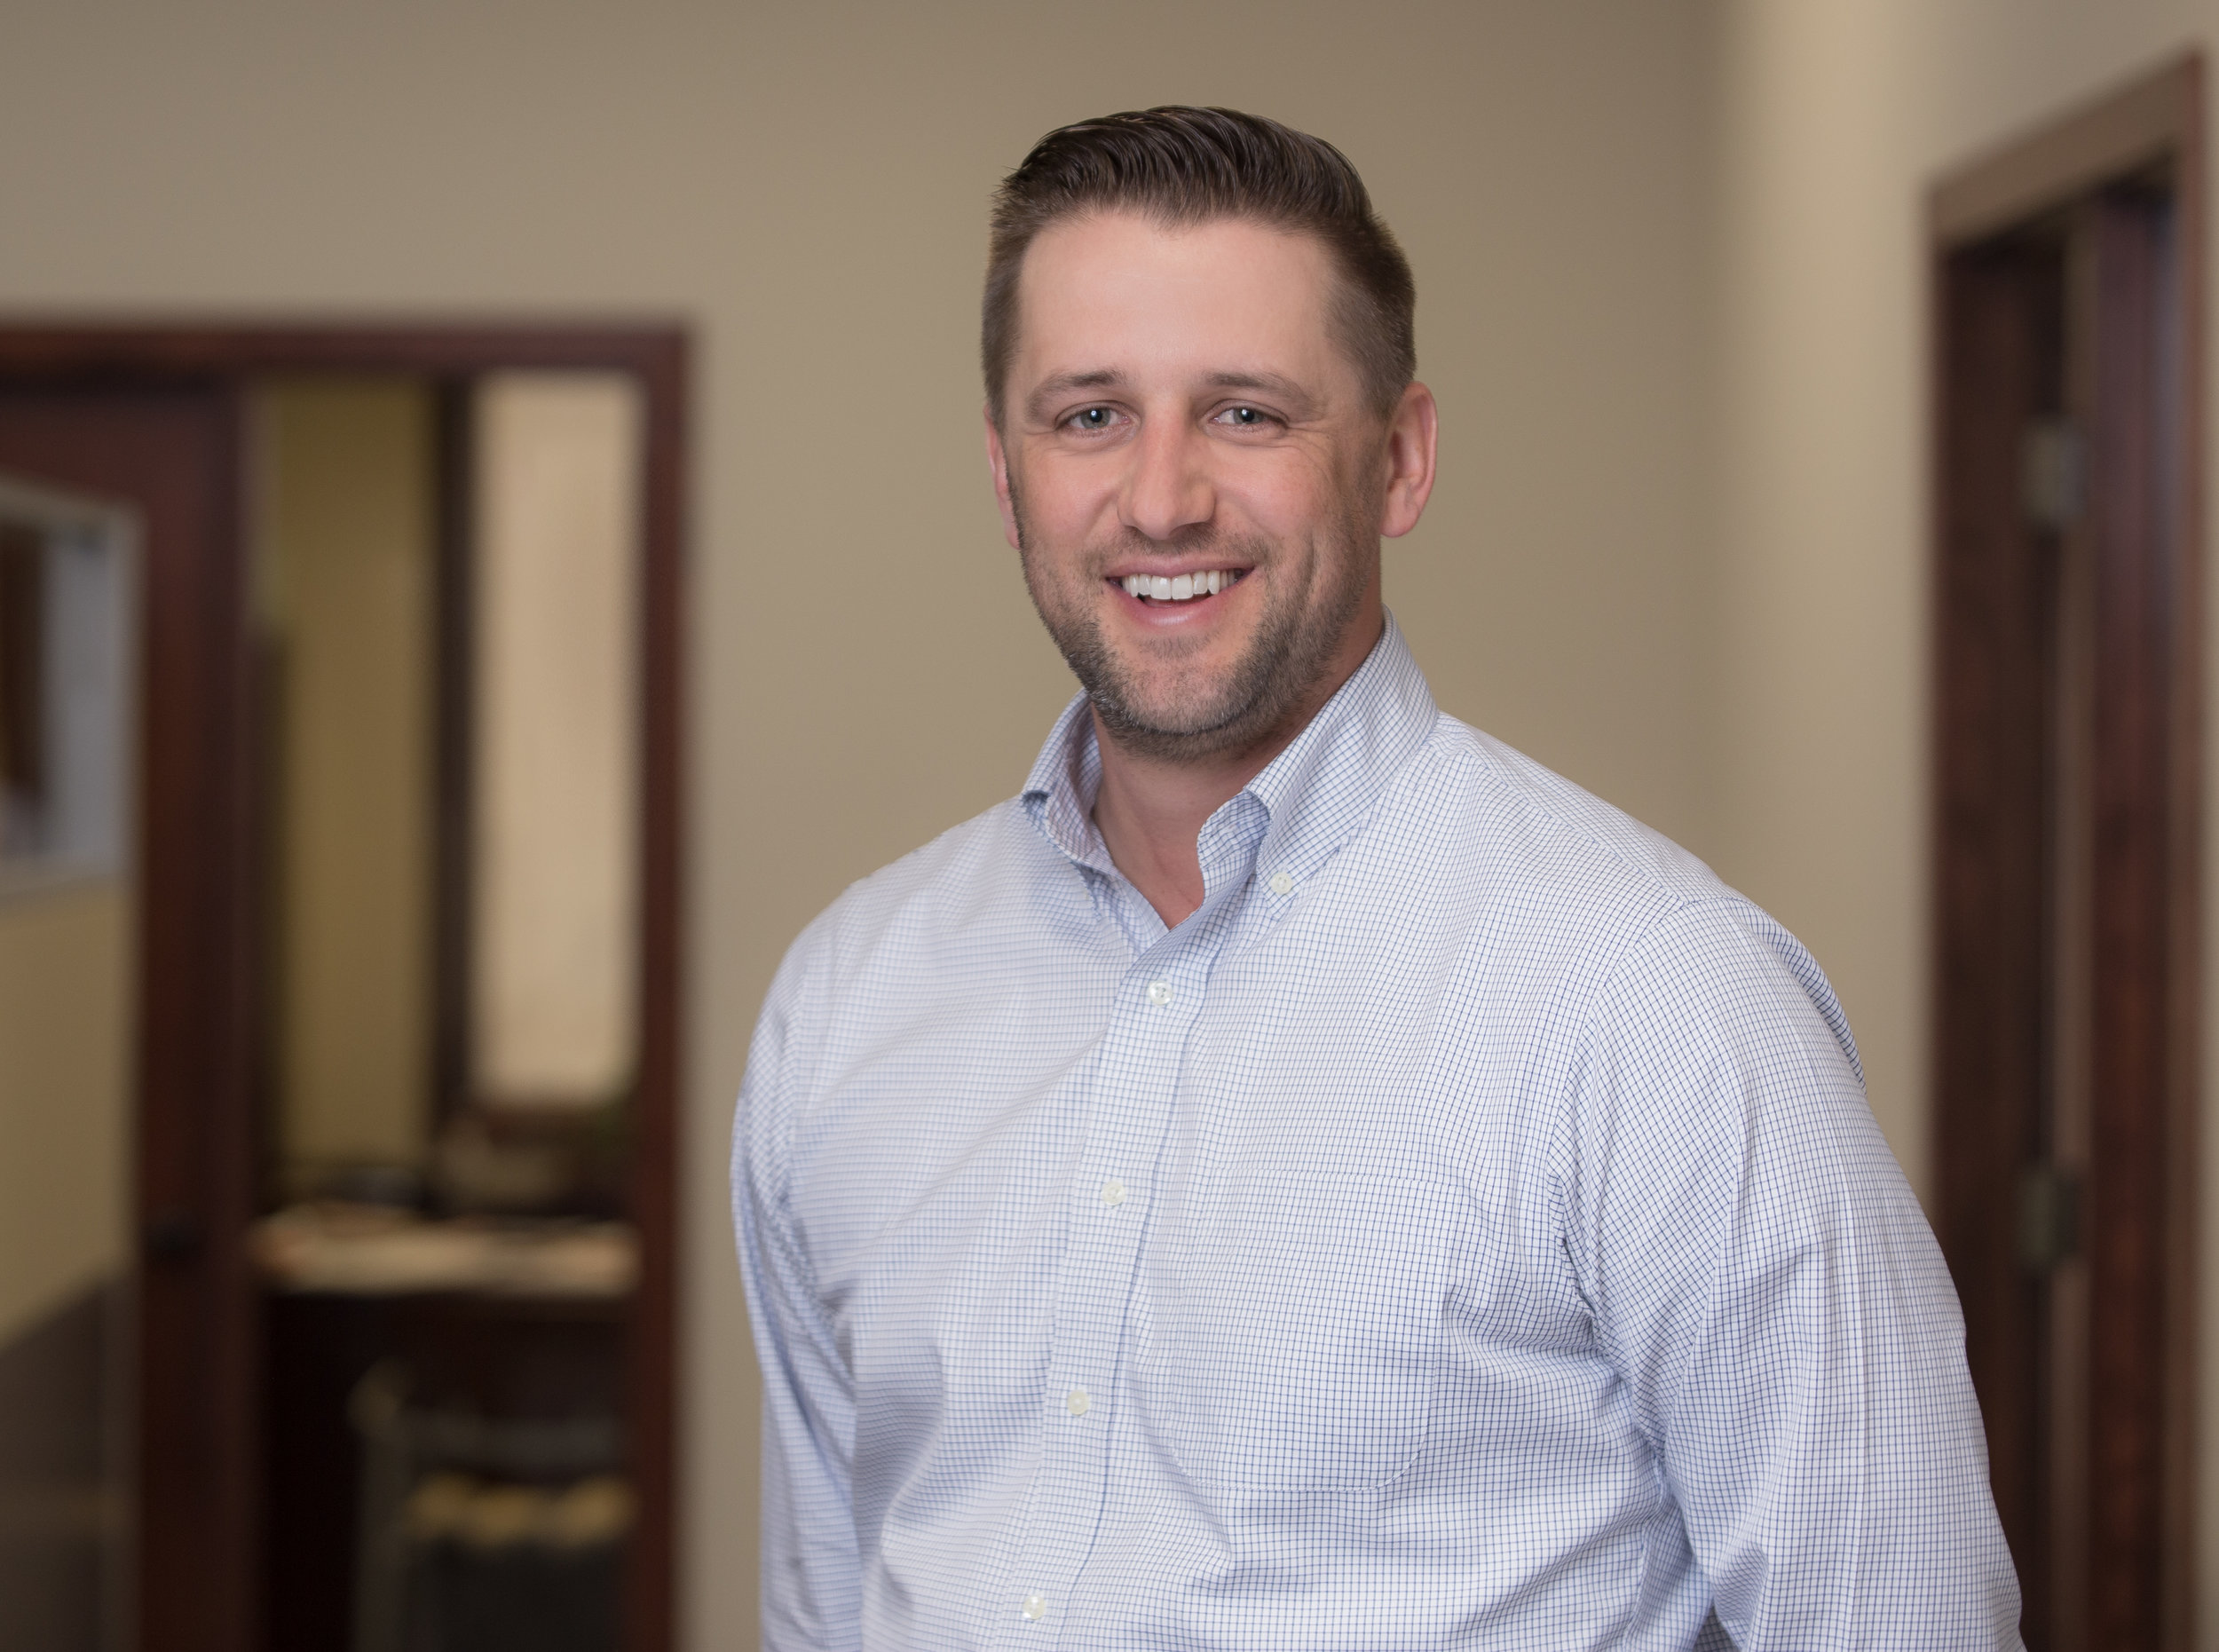 Josh Persons - Insurance & Risk AdvisorJosh Persons is a graduate from the University of Minnesota with a B.S in Business Marketing and Education. He has been in the insurance industry for three years and has received his CLCS (Commercial Lines Coverage Specialist) designation. Josh has been a part of the team at Vaaler since January 2019. His specialty is developing solutions that are specific to each client's situation. Josh was born and raised in Fargo, North Dakota. He enjoys hunting and fishing, and was a professional golfer before he began selling insurance.